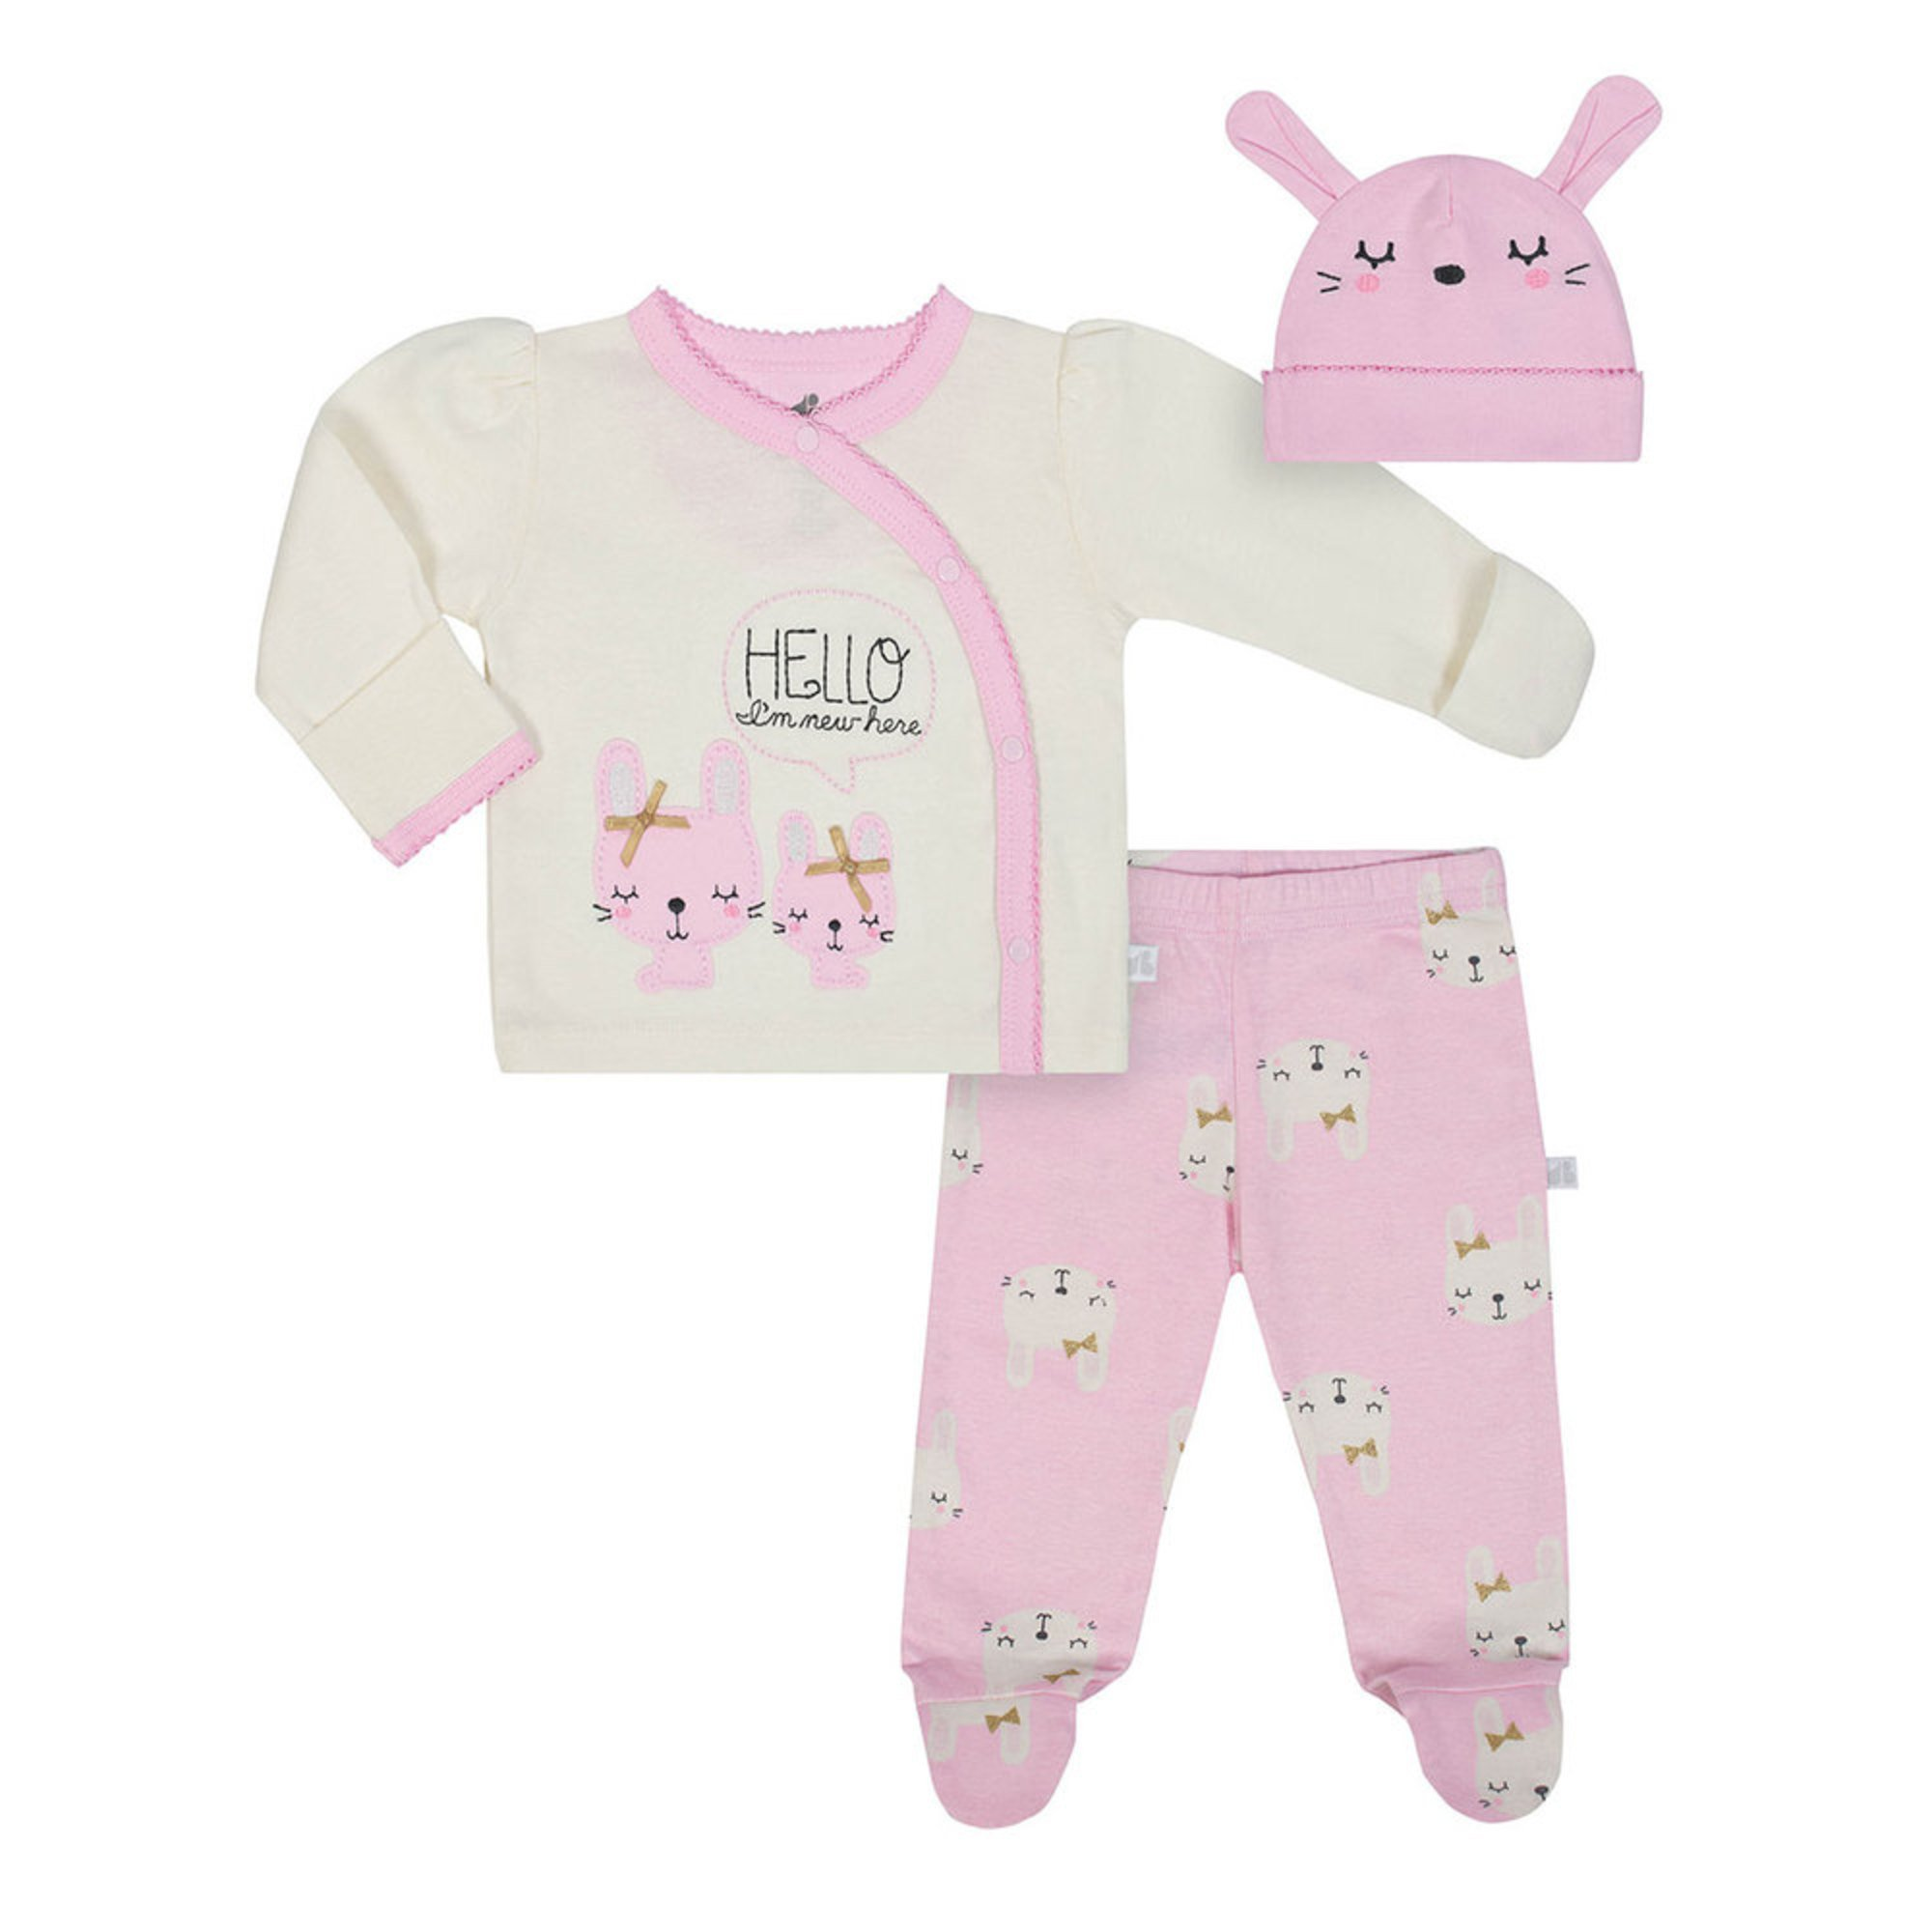 90448c988 Just Born Baby Girls  Organic 3-piece Take Me Home Set